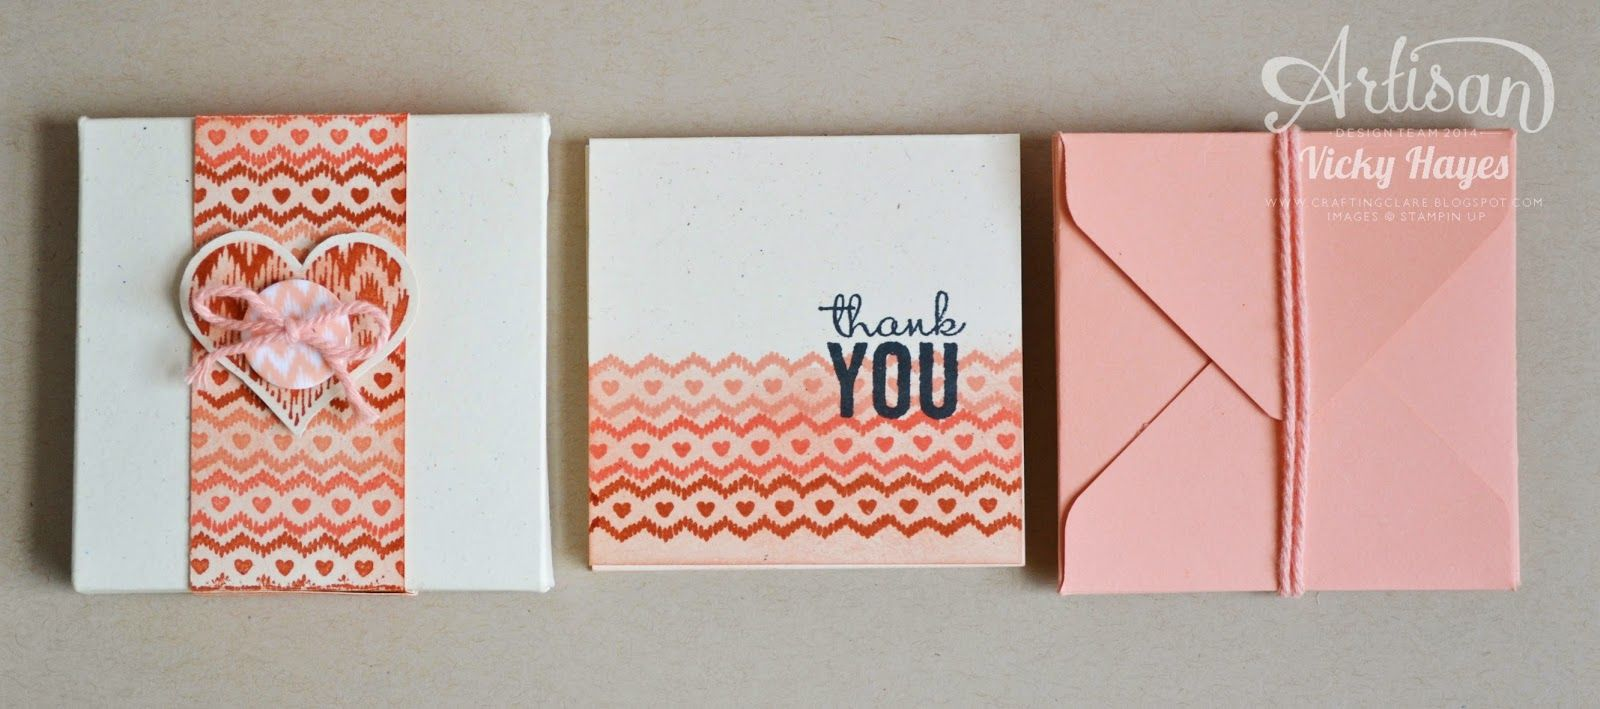 A box of note cards makes a lovely gift and this one takes no time thanks to the envelope and gift box punch boards! - Vicky Hayes